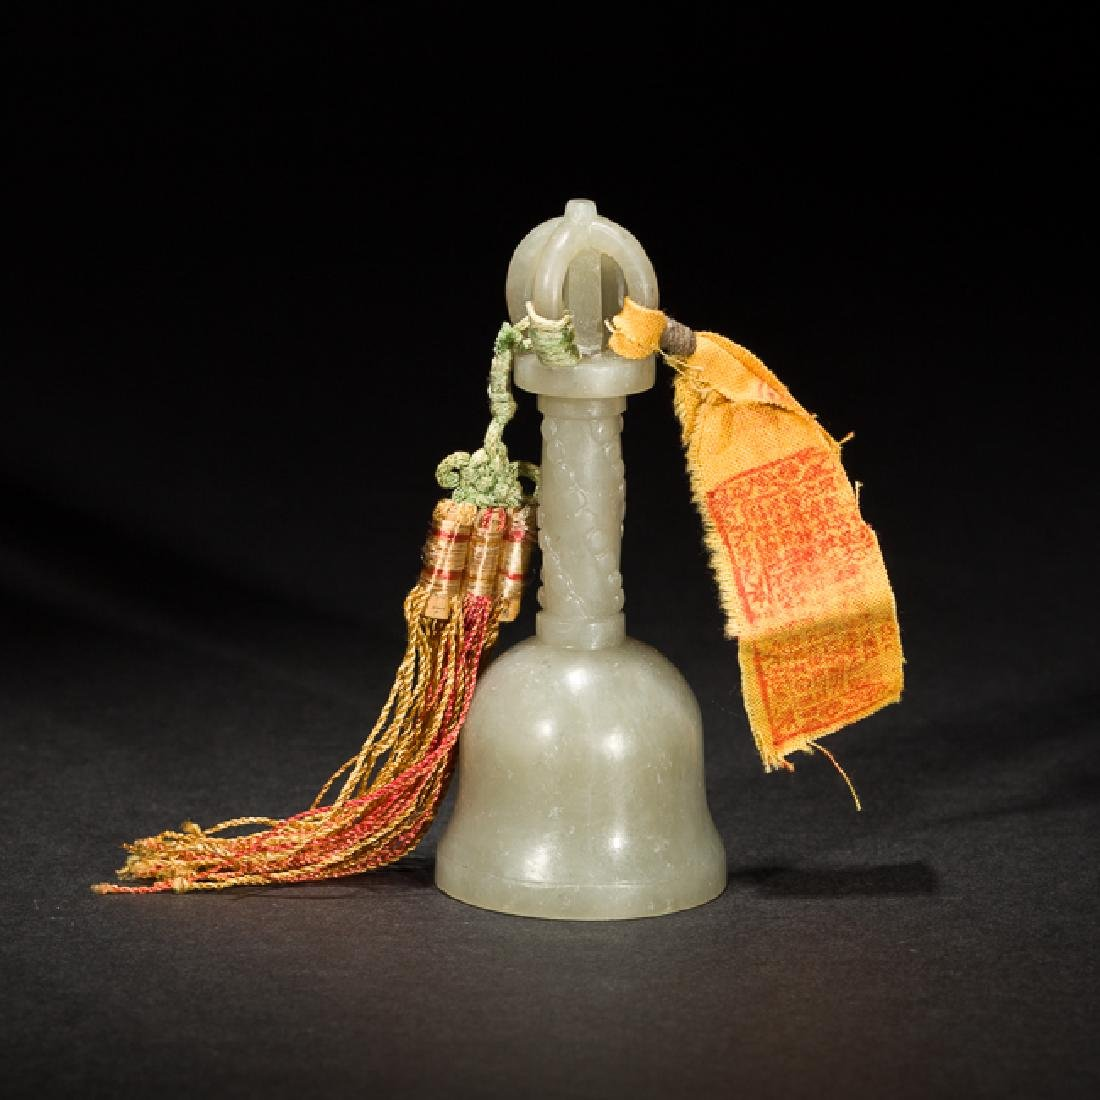 Chinese Antique Jade Bell, 19th Century